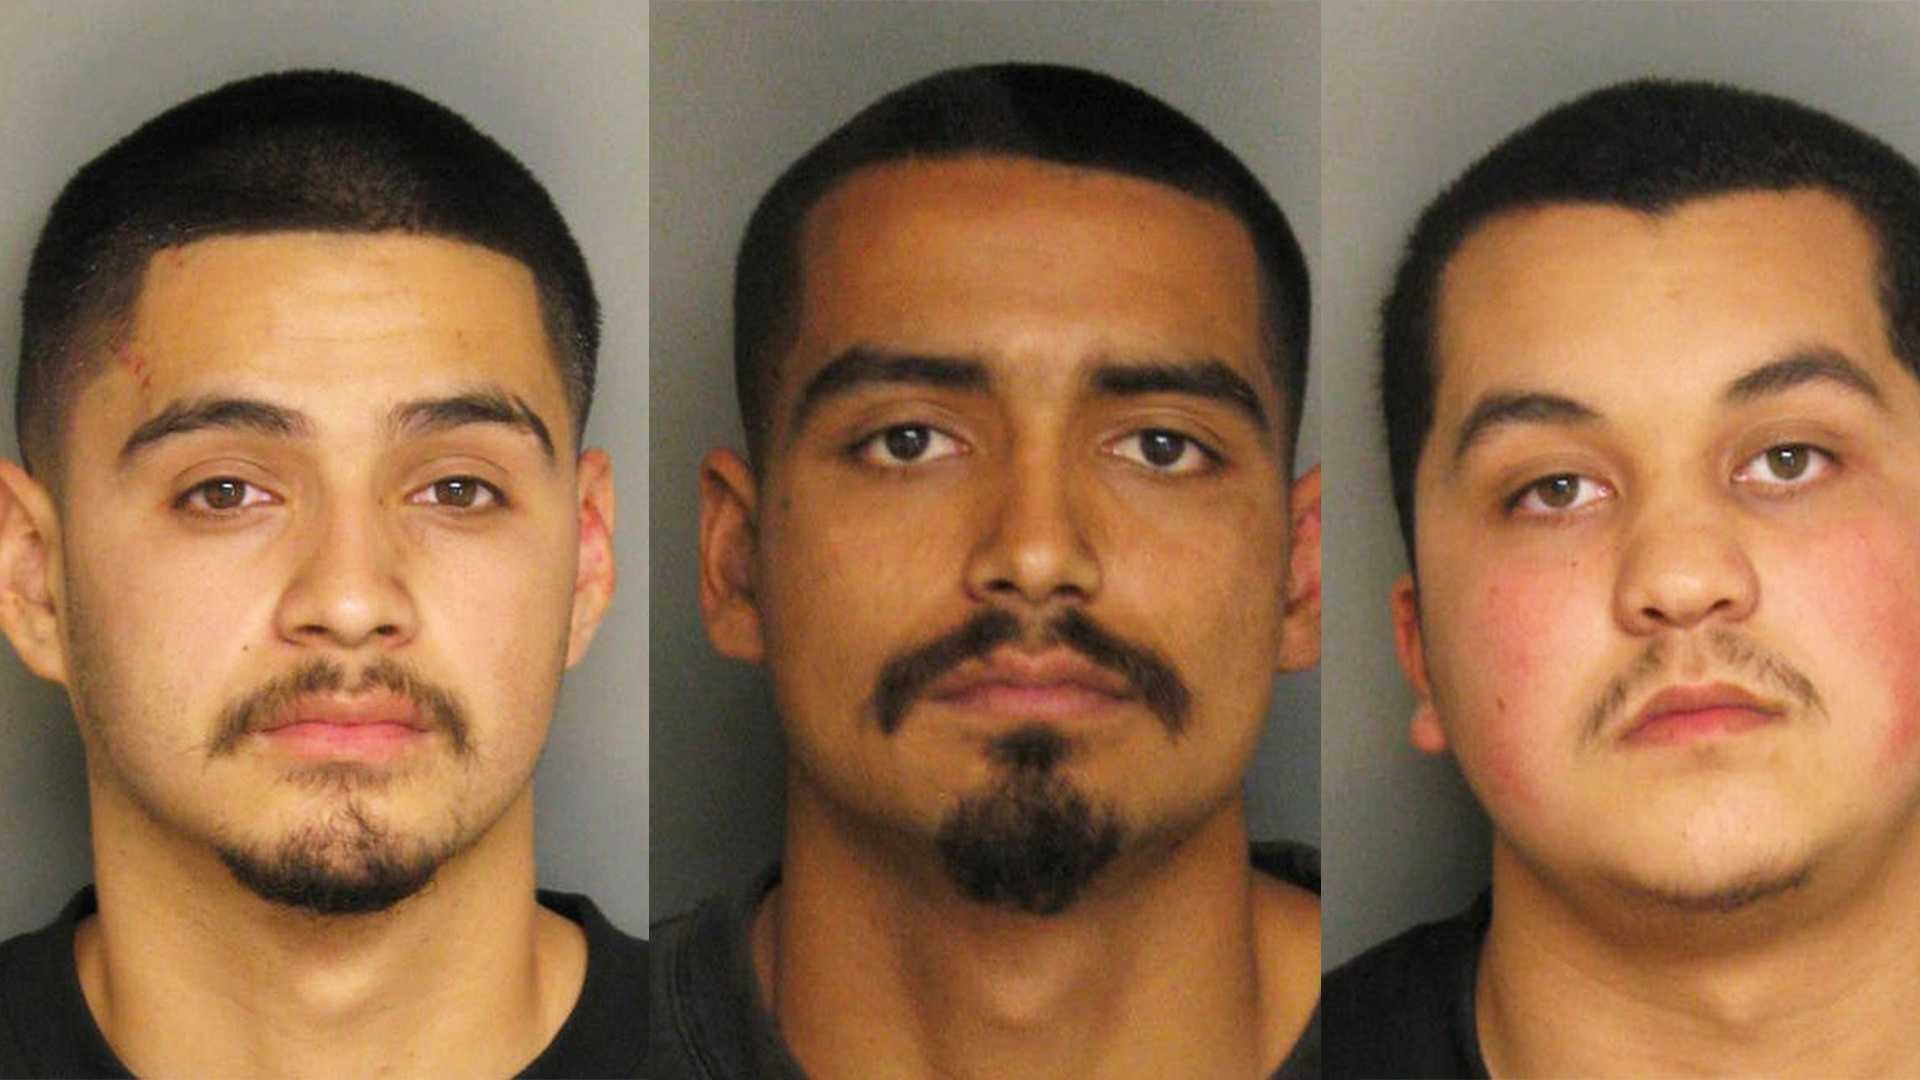 Oswaldo Ruiz, left, Jeremie Aguilera, and Joseph Garcia are seen in mug shots.